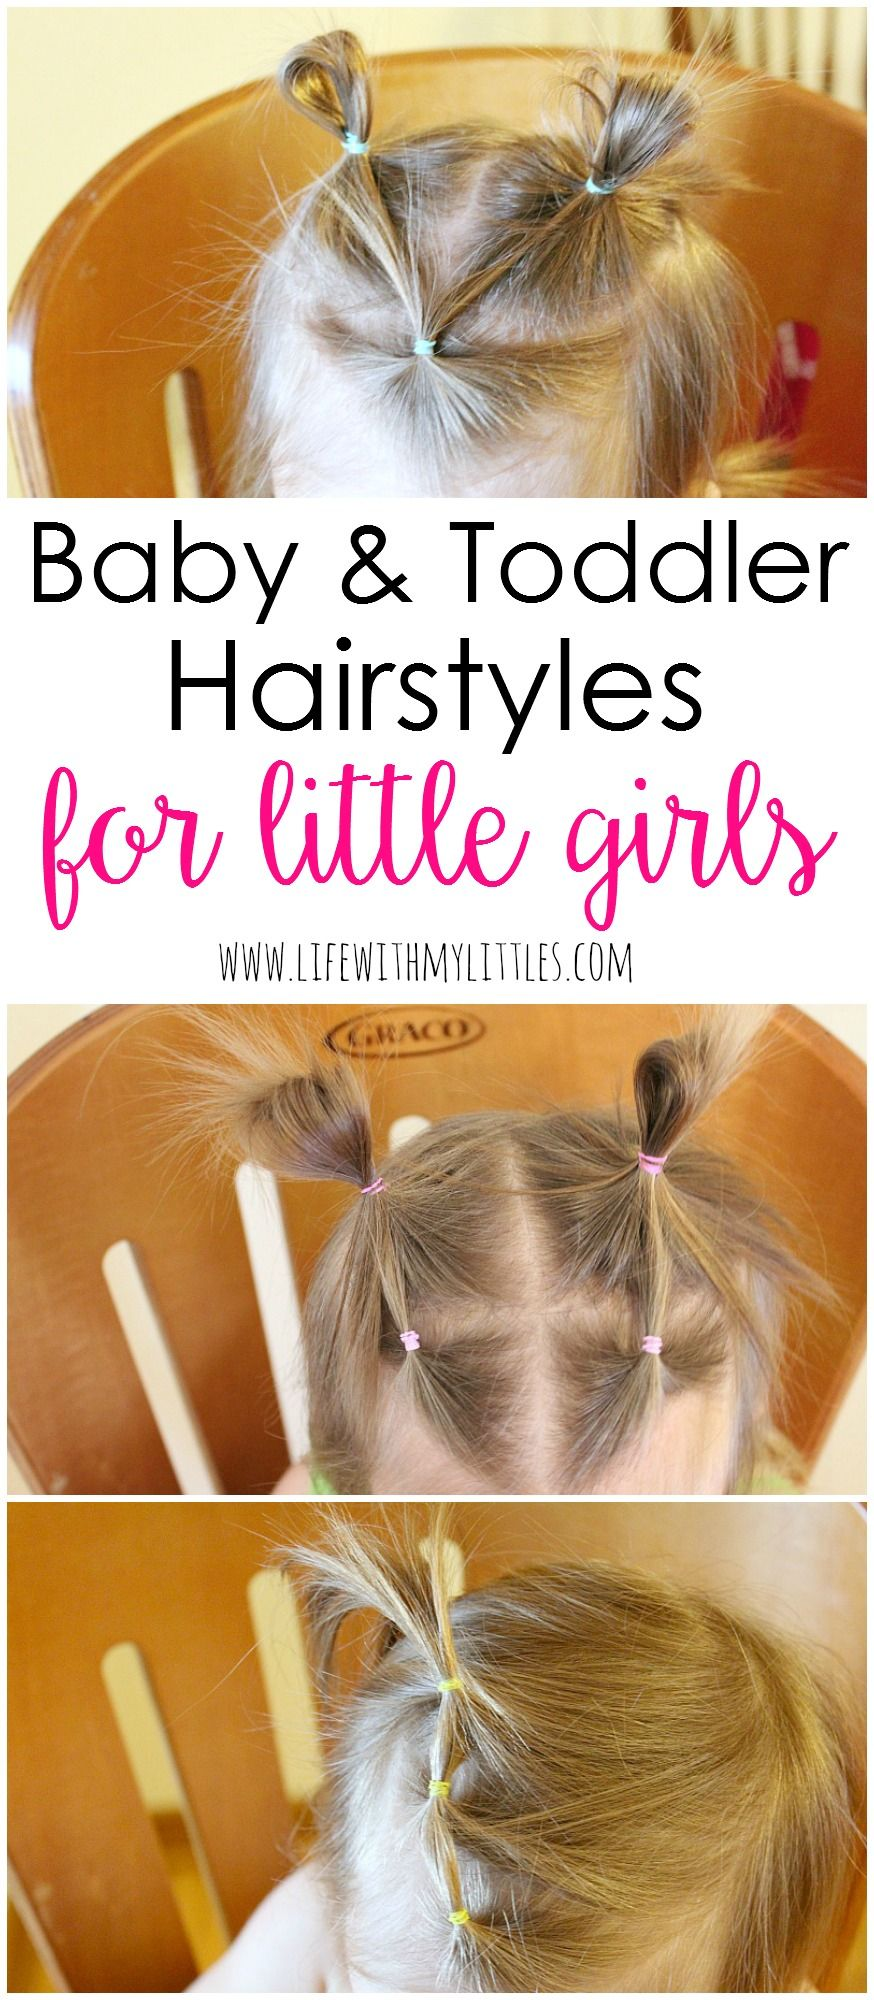 Baby And Toddler Girl Hairstyles Life With My Littles Baby Girl Hair Baby Girl Hairstyles Toddler Hairstyles Girl